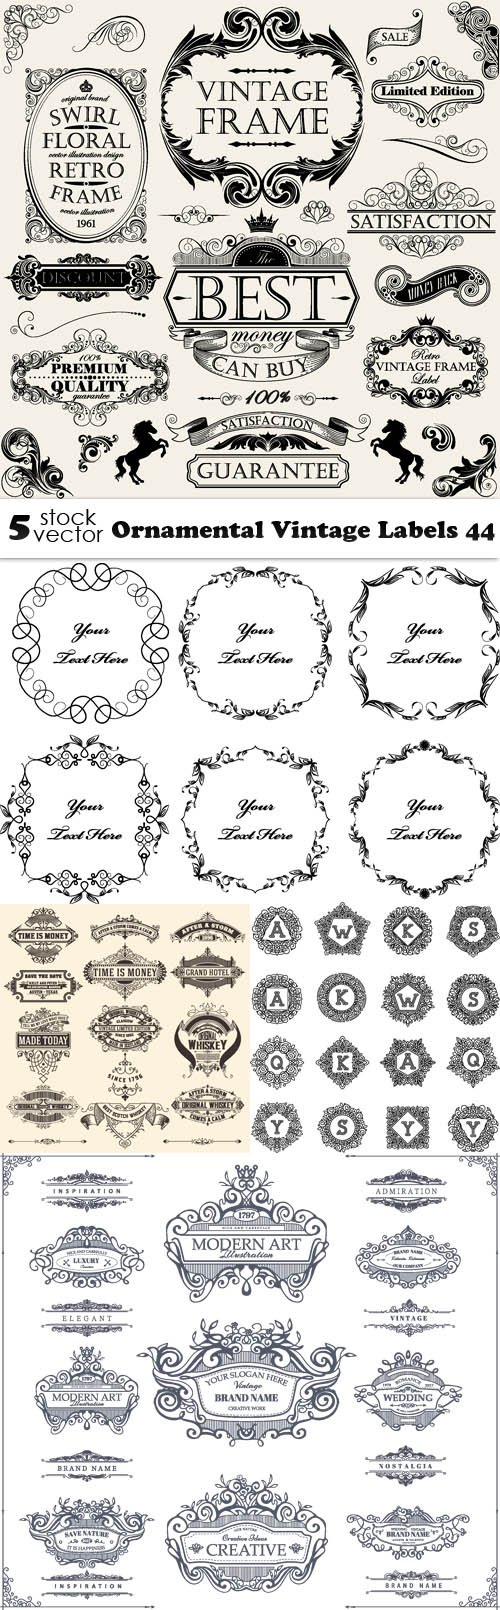 Vectors - Ornamental Vintage Labels 44